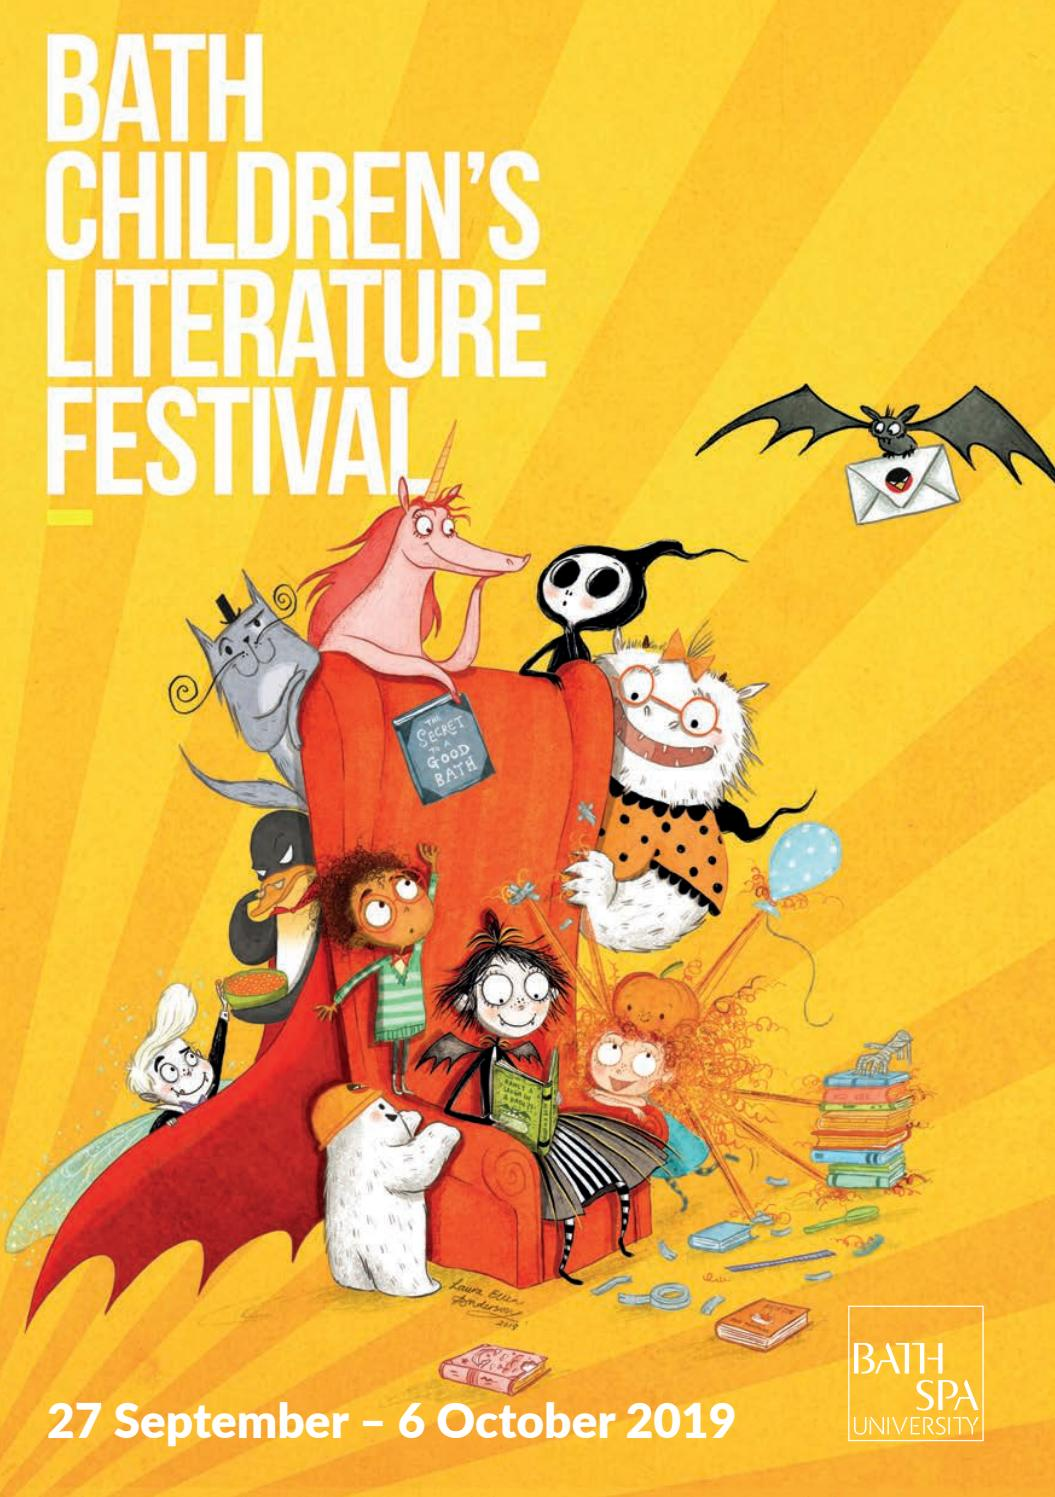 Bath Children's Literature Festival 2019 Brochure by Bath